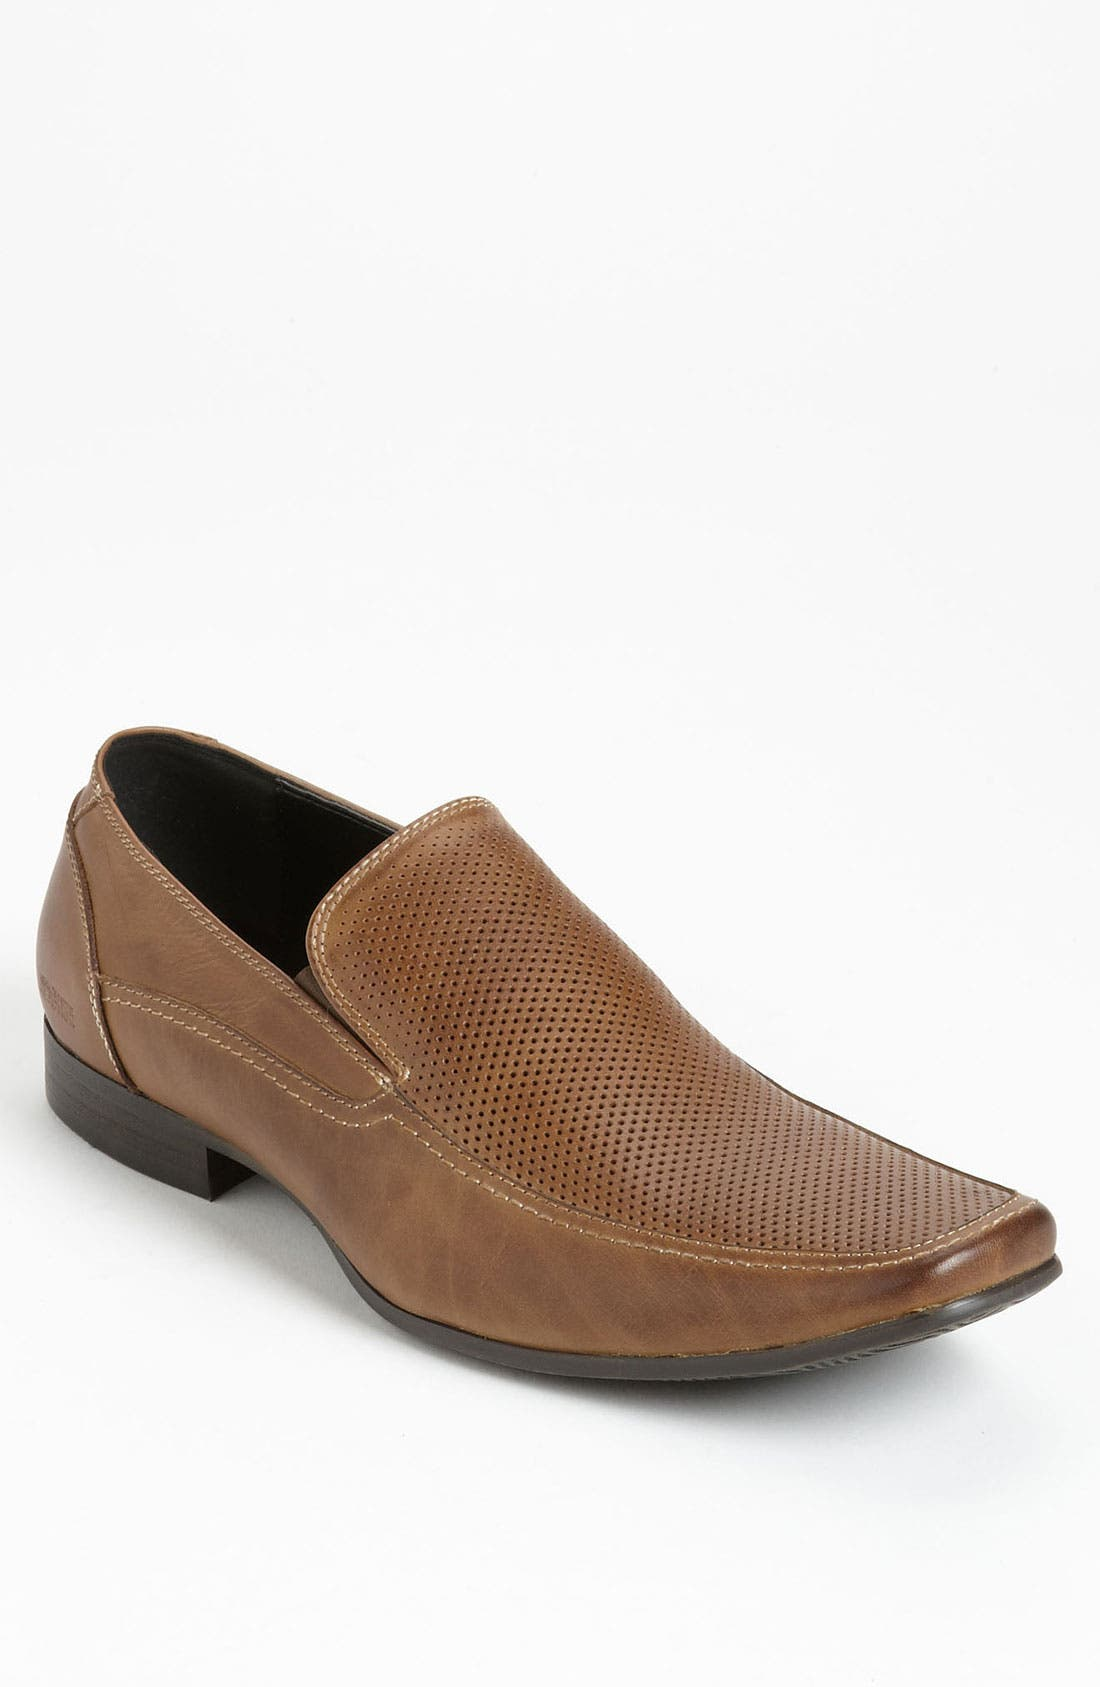 Alternate Image 1 Selected - Kenneth Cole Reaction 'Joy Ride' Loafer (Online Only)